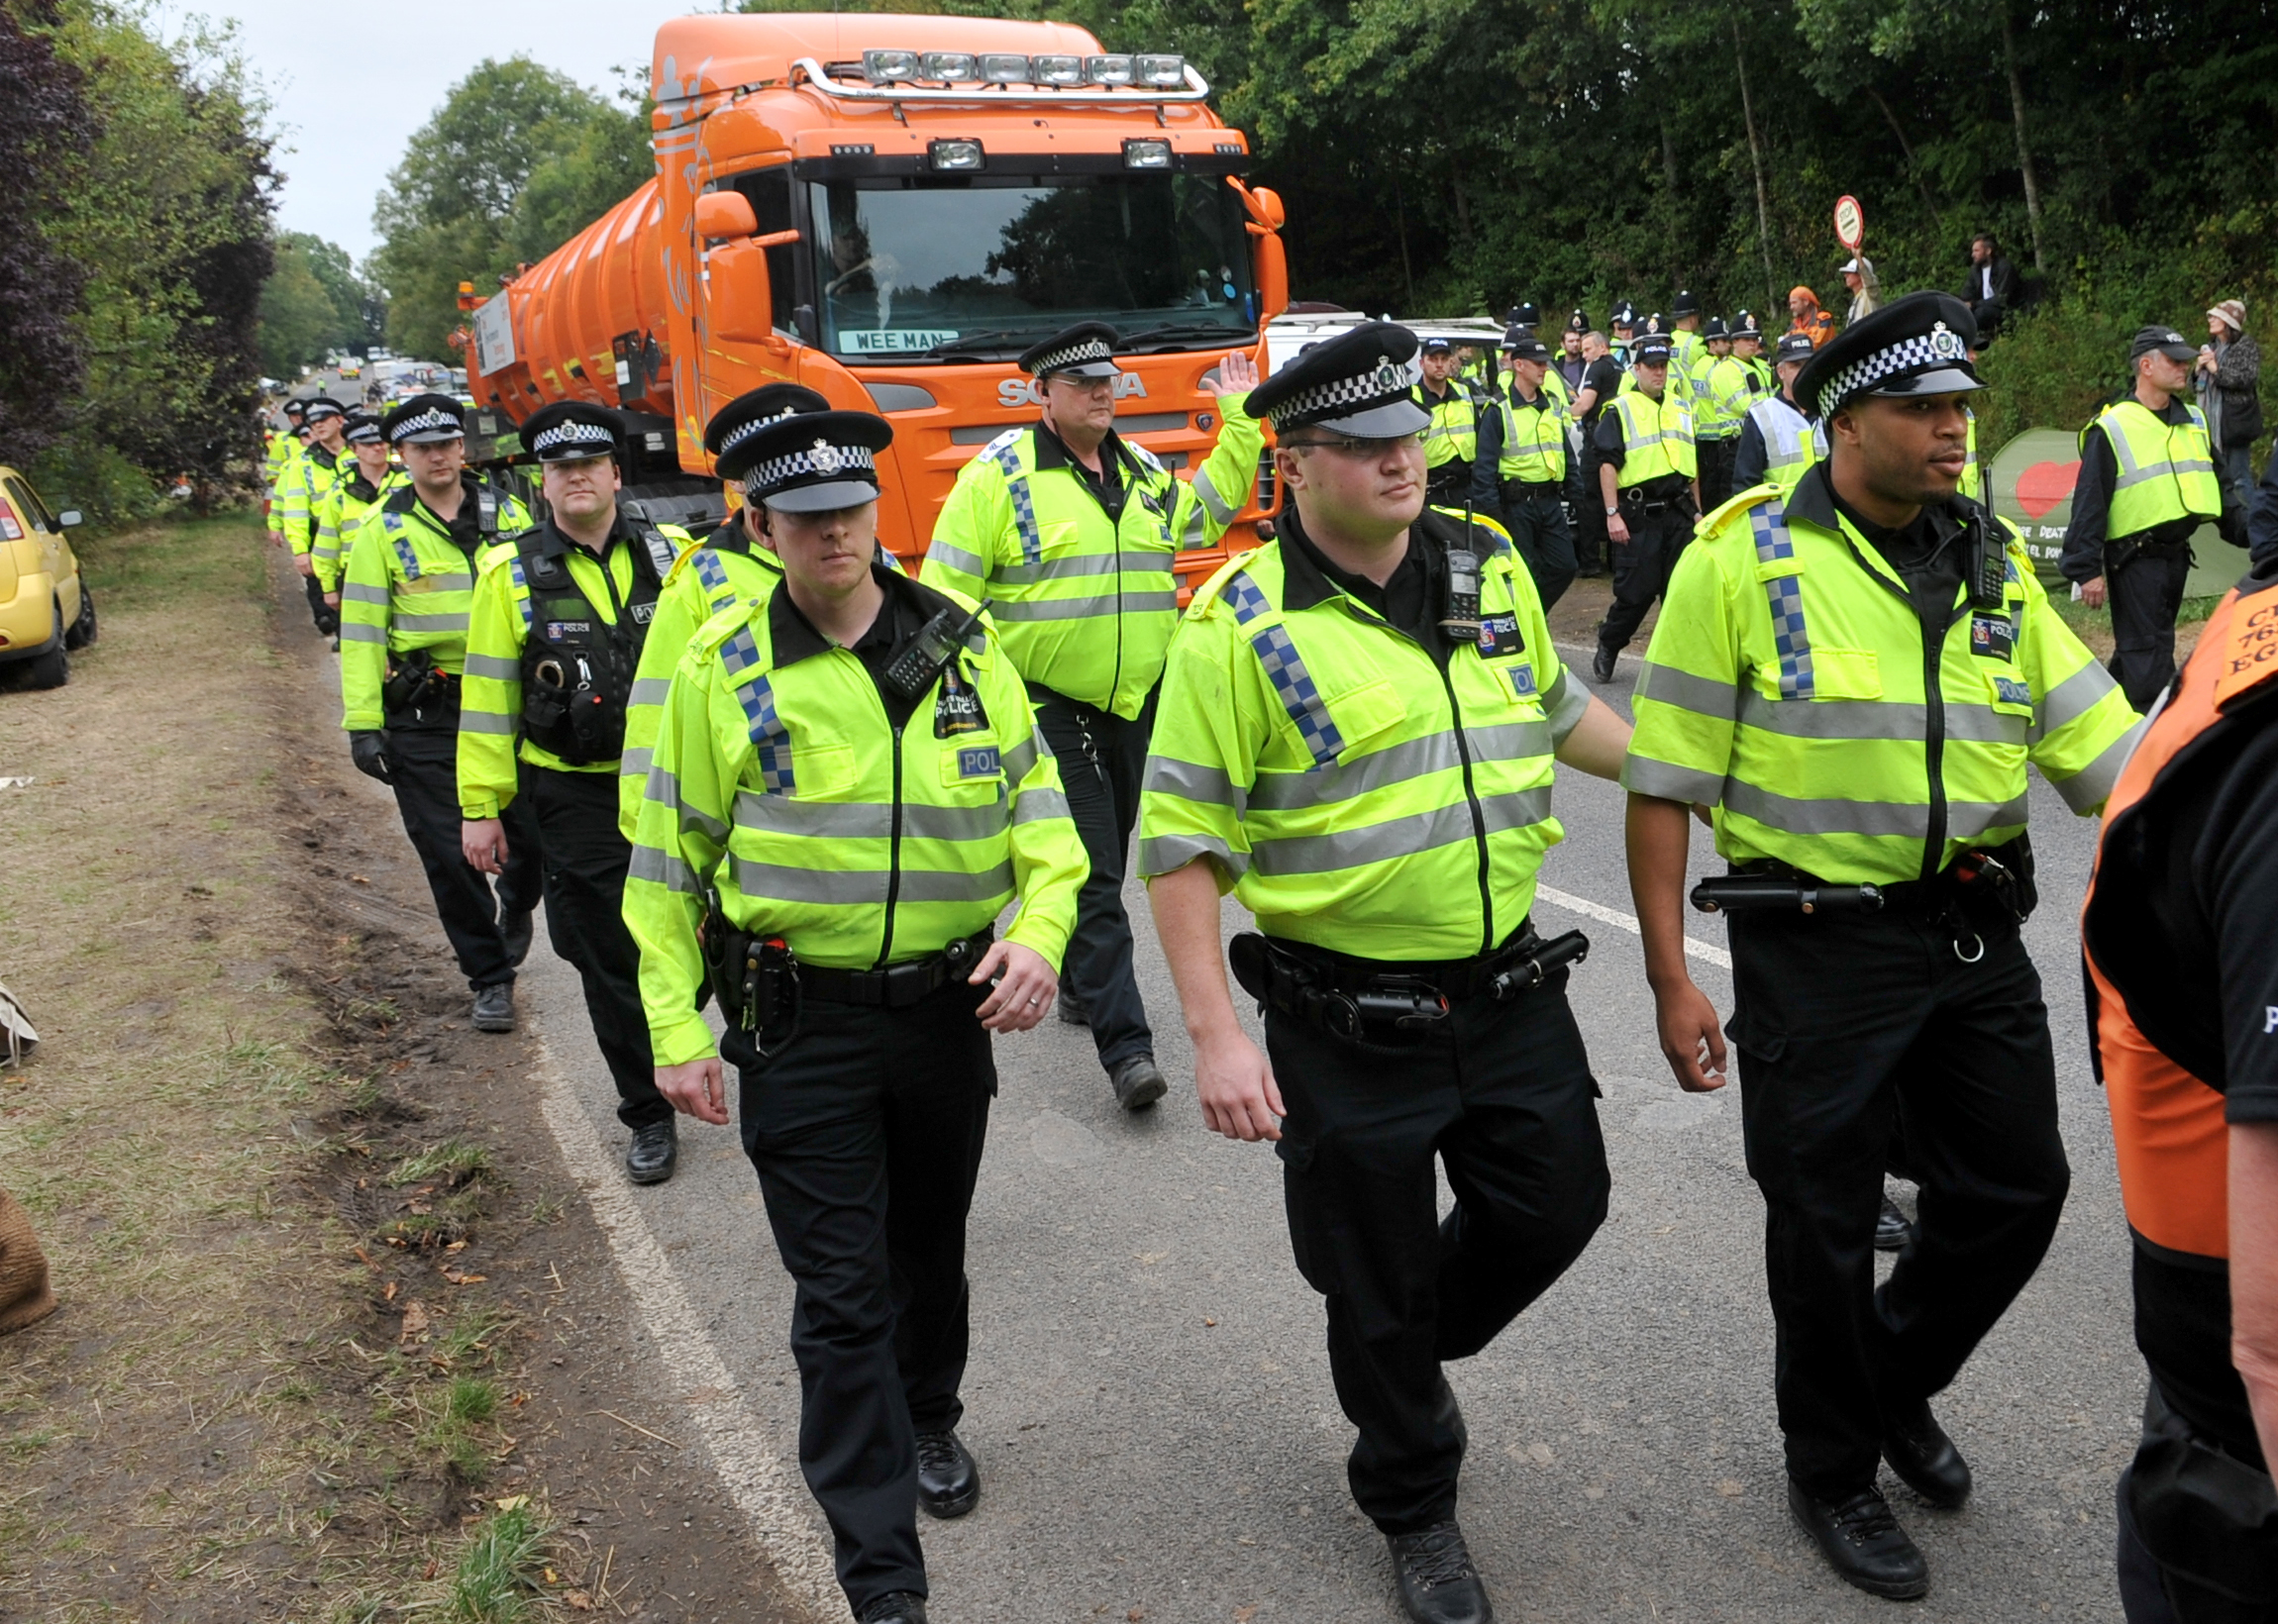 Special report: Half of cases dropped against Balcombe protesters despite £4m bill